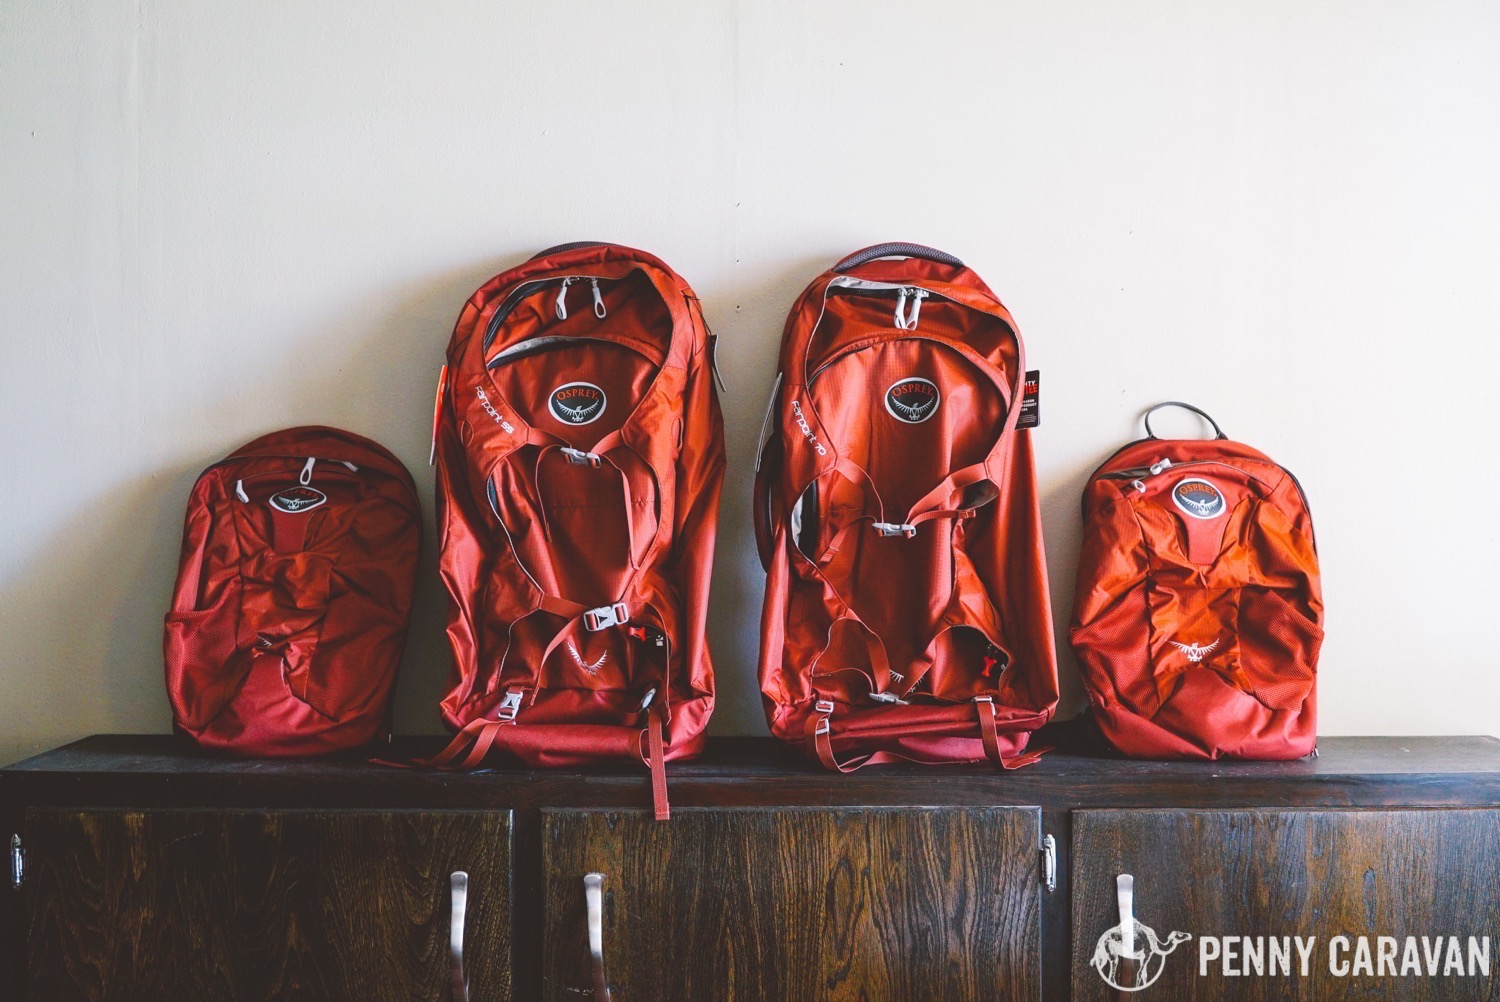 060127b98d2e Comparing the Osprey Farpoint 55 and Farpoint 70 Travel Backpacks ...